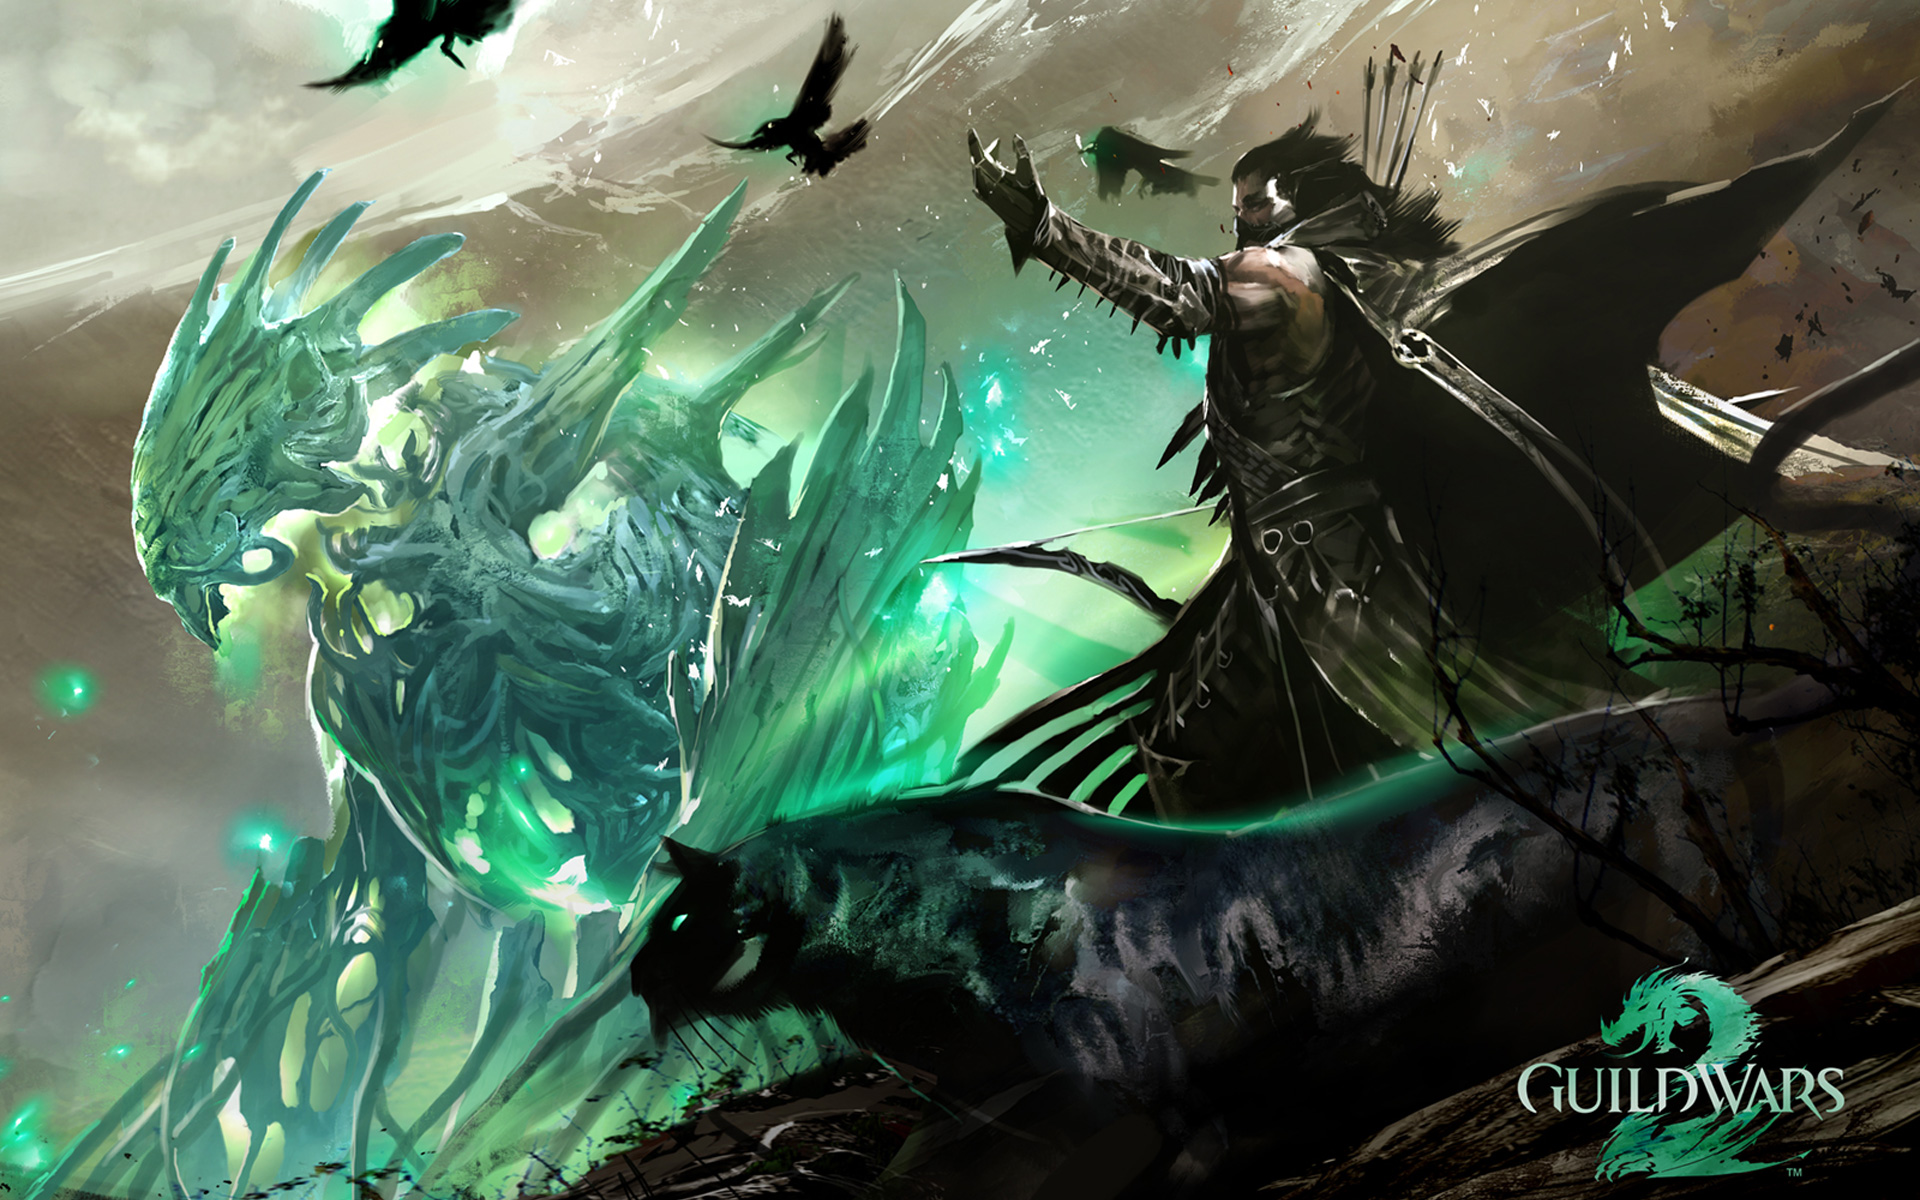 Free Guild Wars 2 Wallpaper in 1920x1200